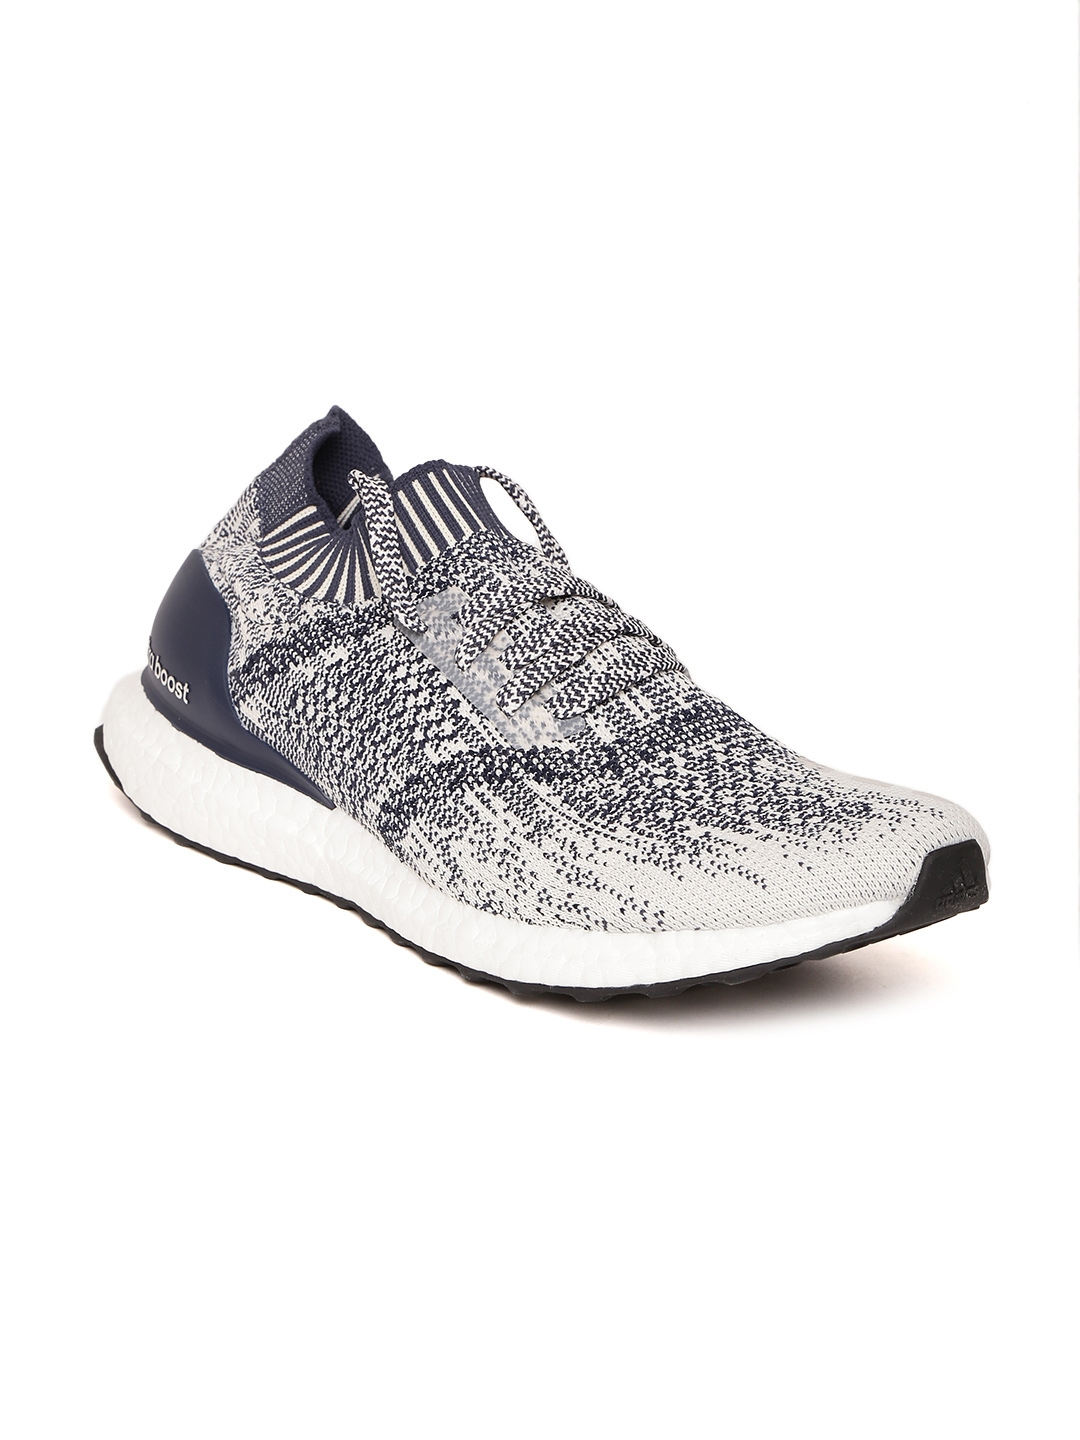 3ba934bc9b847 Buy ADIDAS Men Off White   Navy Ultraboost Uncaged Running Shoes ...